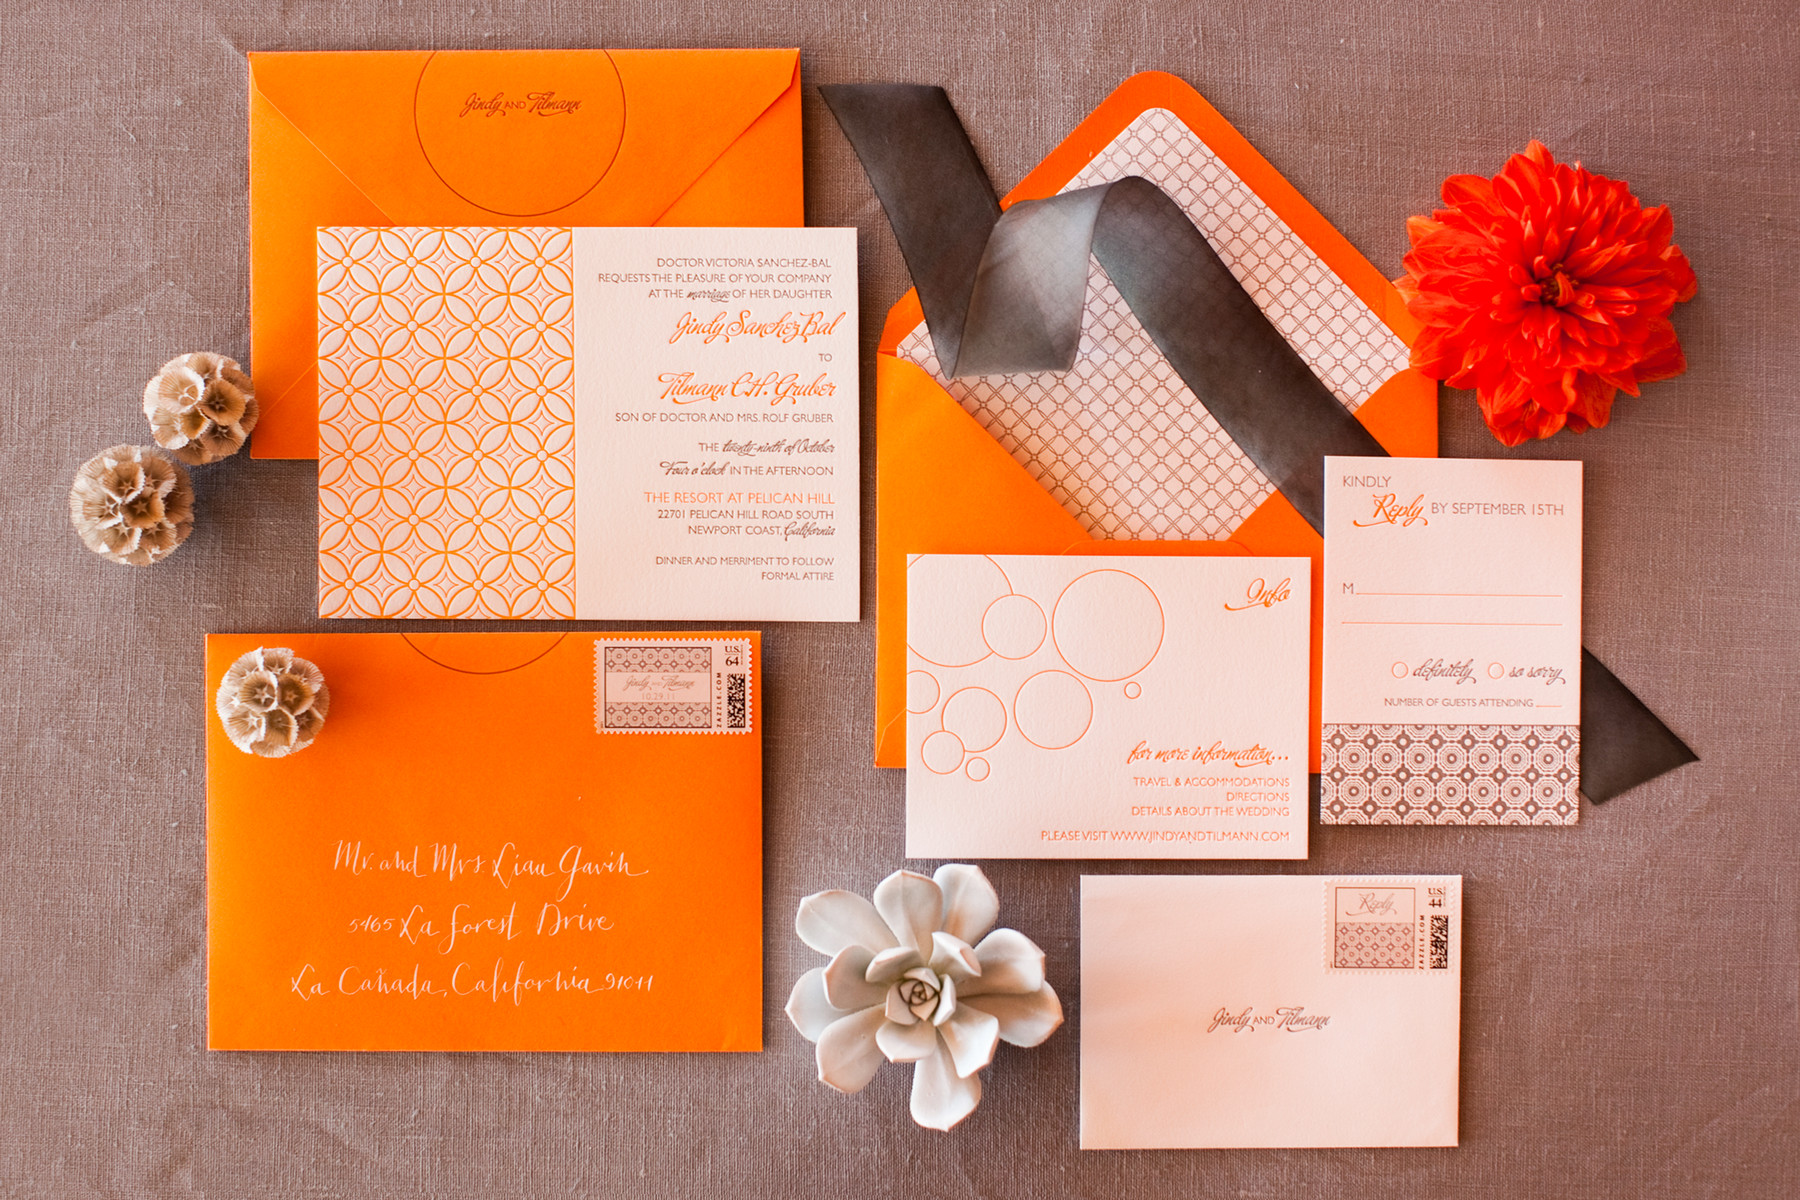 Tangerine invitation suite photographed by John and Joseph Photography - Los Angeles